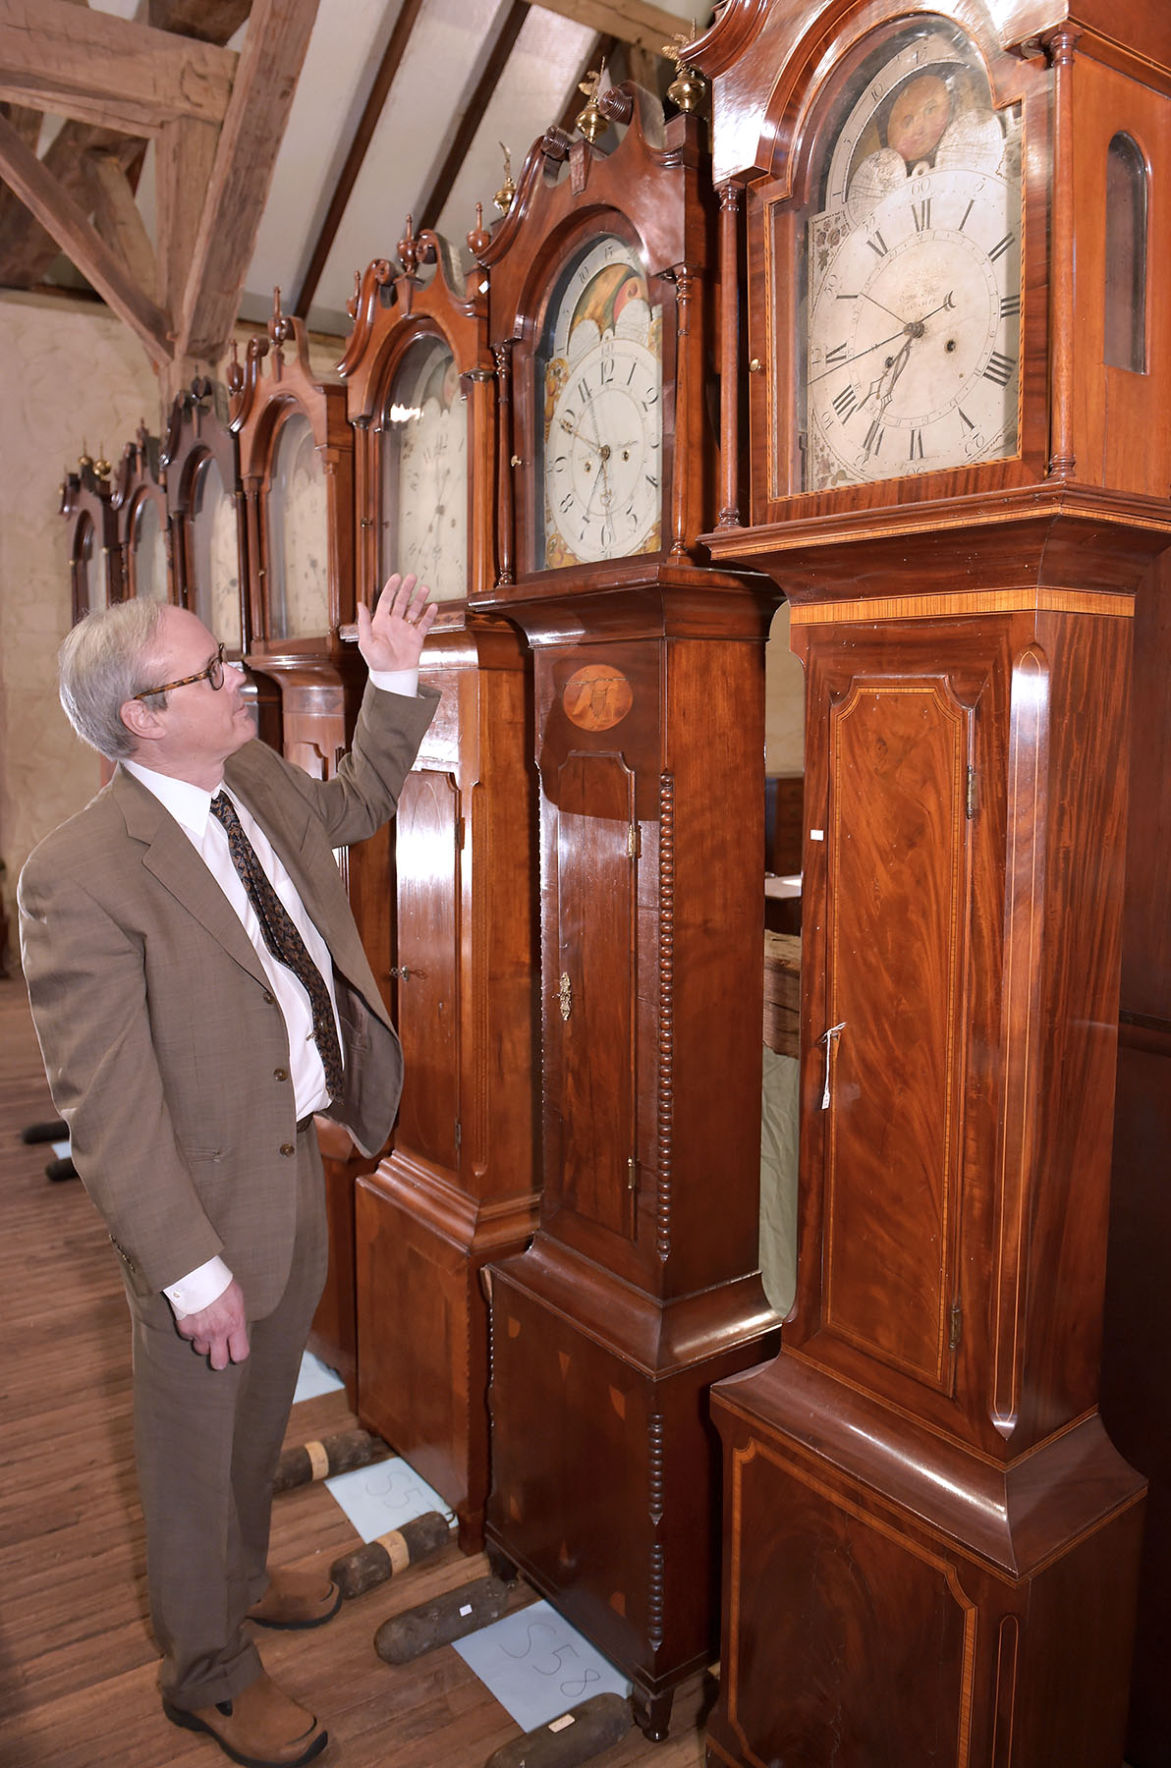 Bachelor scholar leaves 112 tall clocks and a $9.7-million legacy  benefiting museums and historic preservation | Local News |  lancasteronline.com - Bachelor Scholar Leaves 112 Tall Clocks And A $9.7-million Legacy